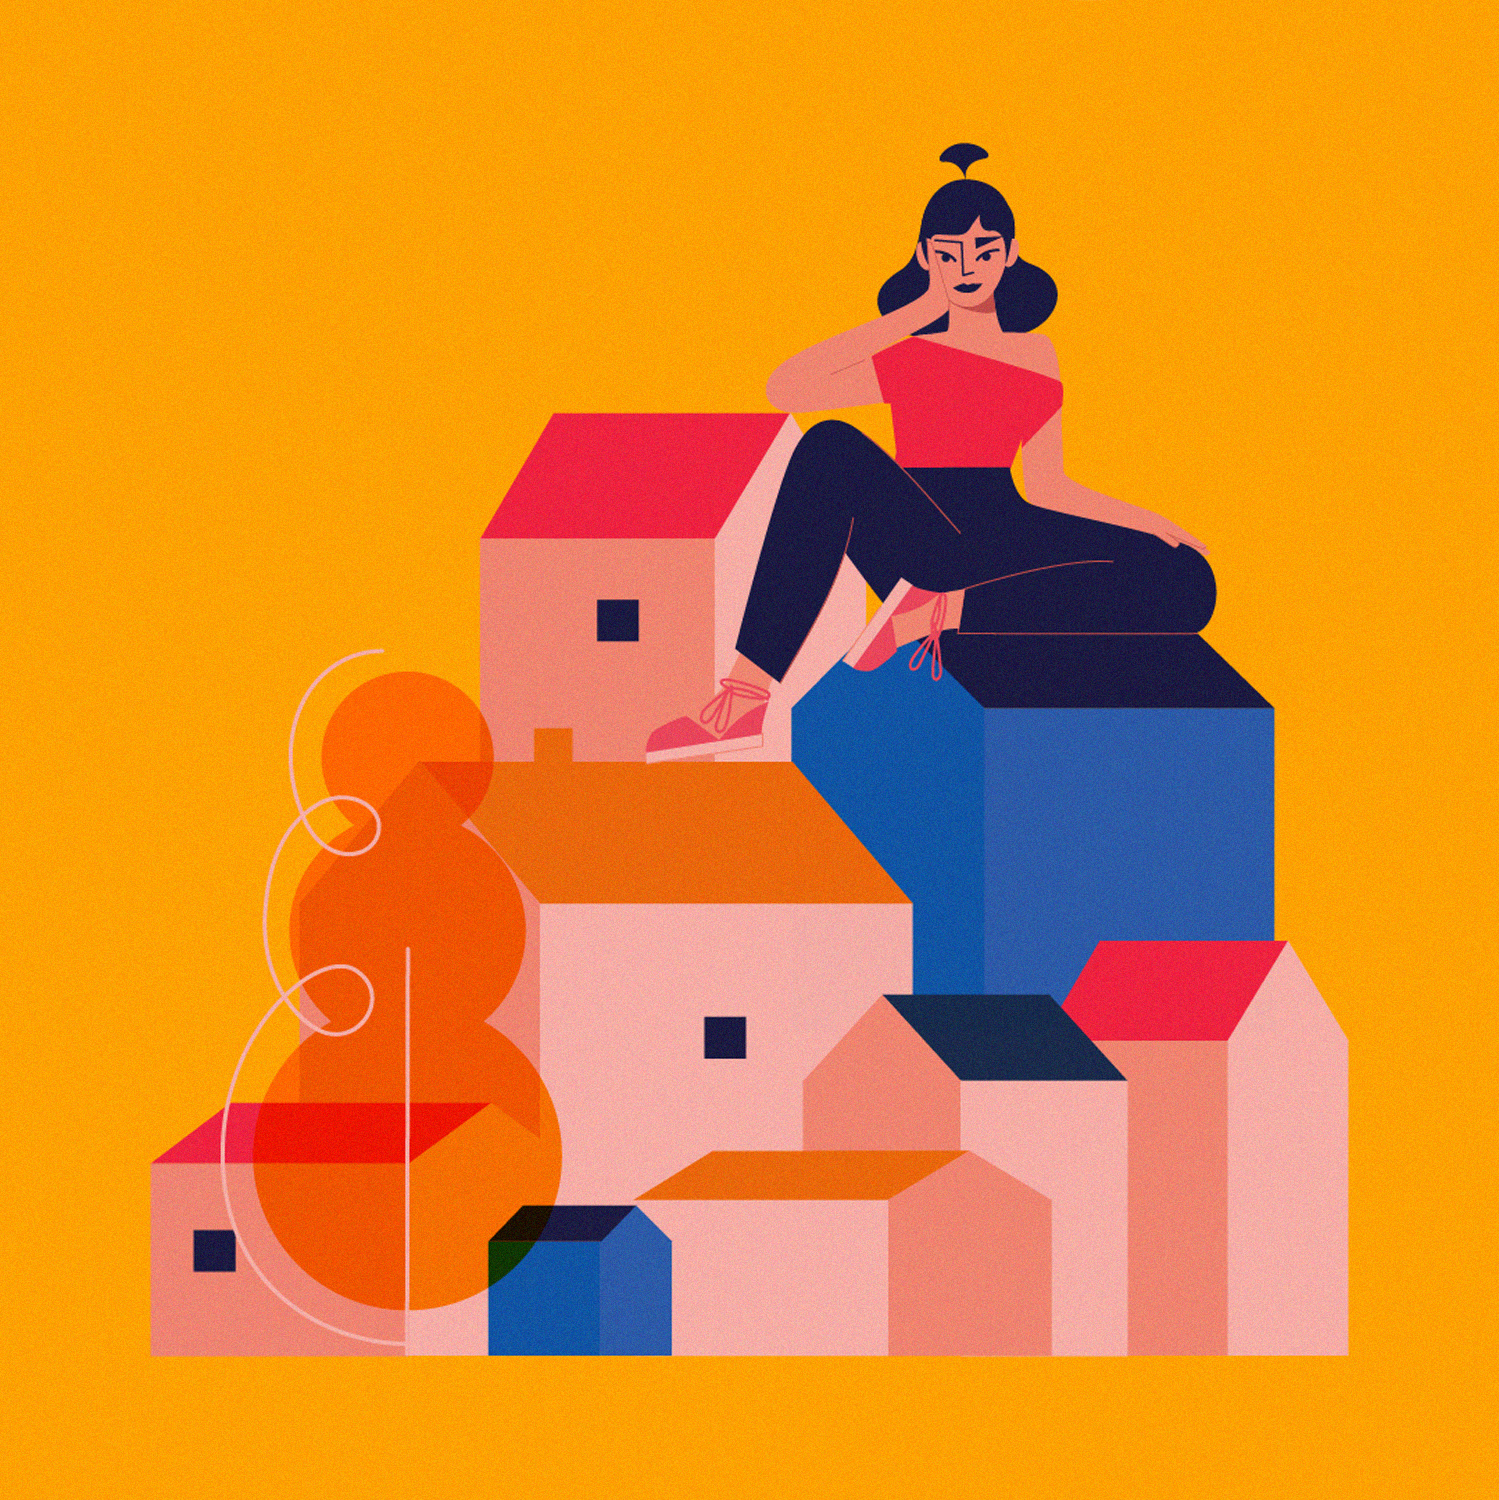 Editorial illustration depicting woman sitting on top of a house during covid lockdown_Covid-19 artwork